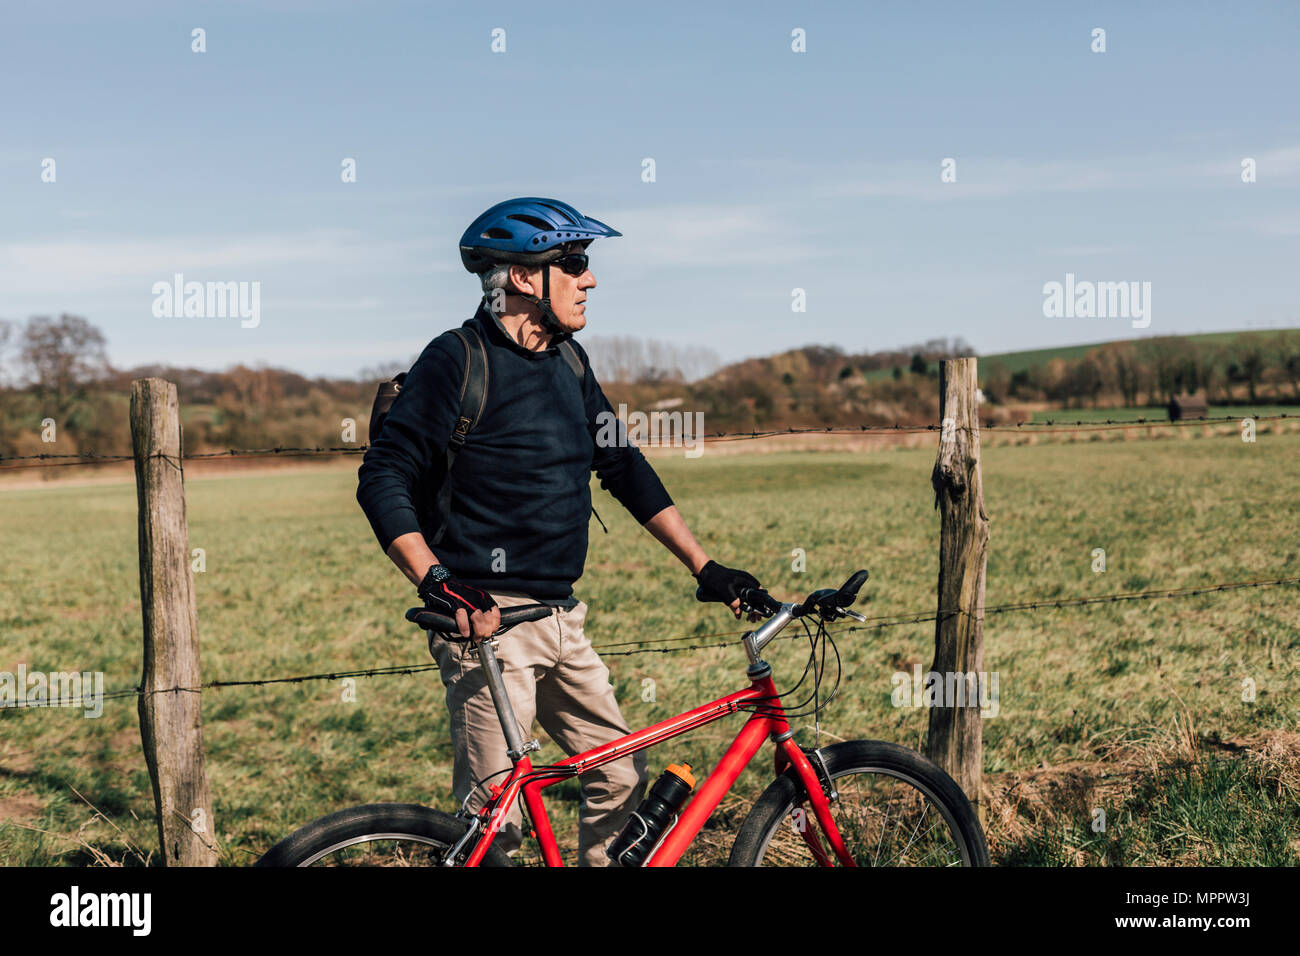 Mountainbiker with cycling helmet - Stock Image